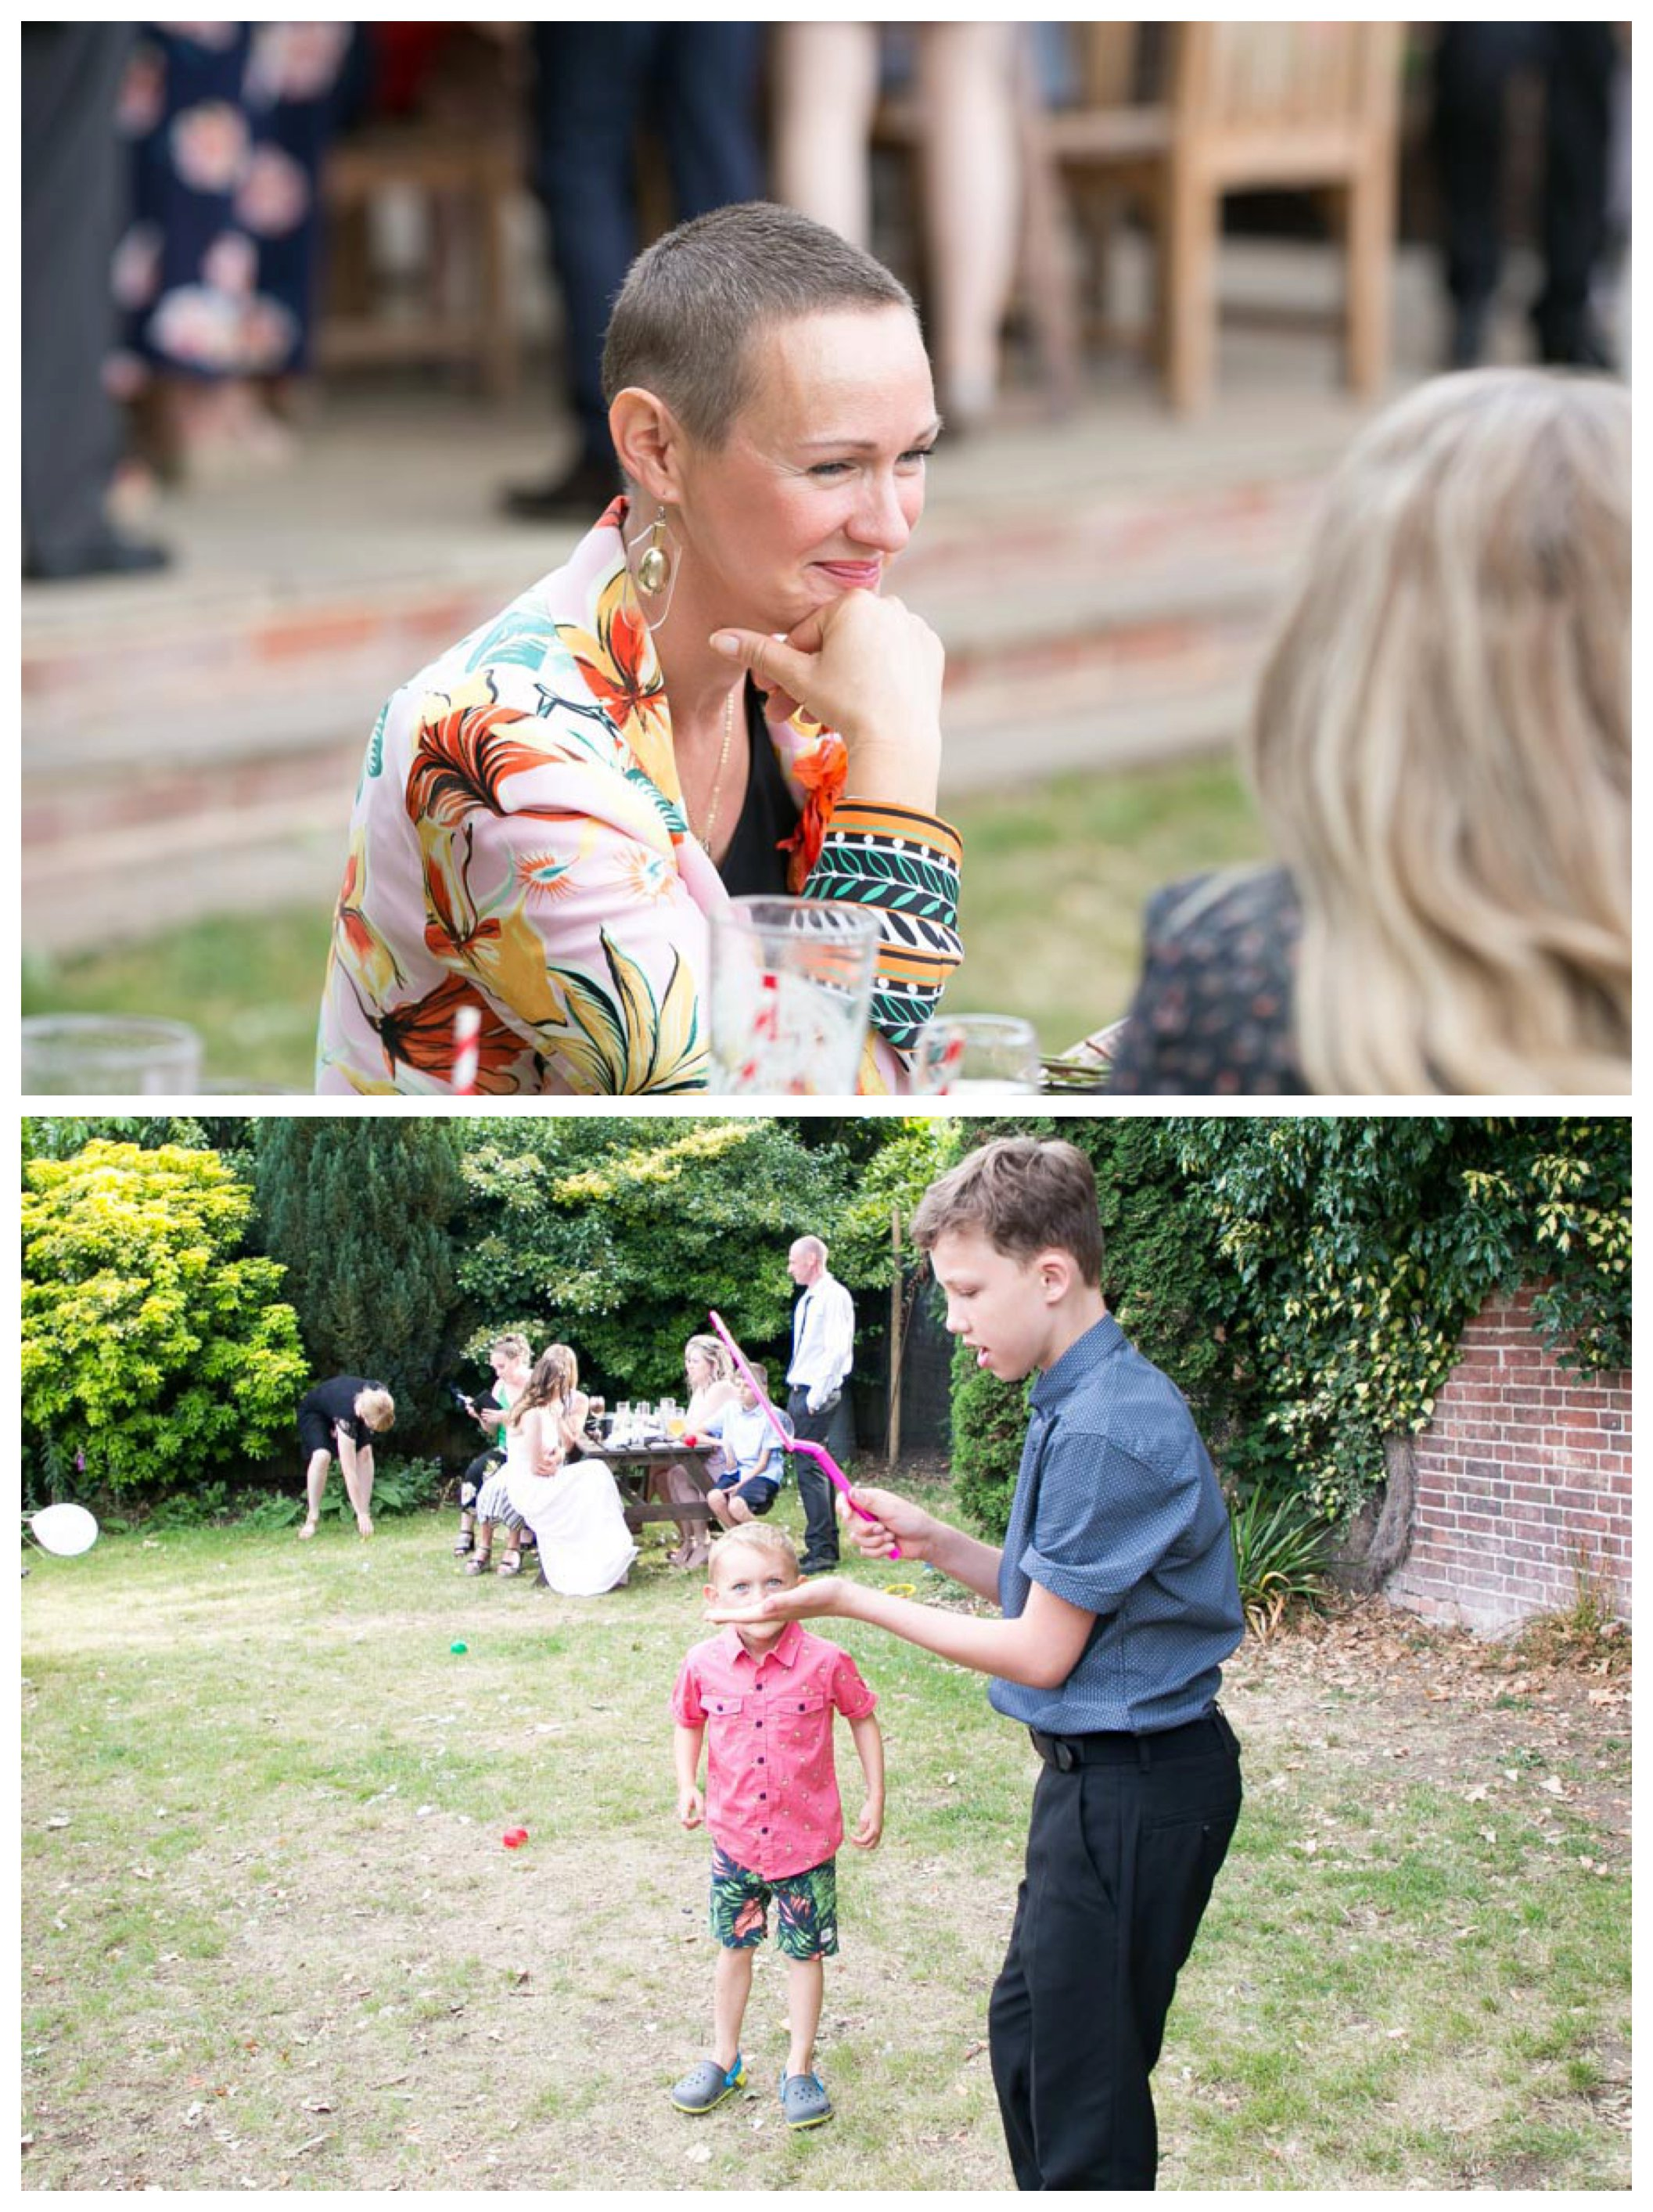 guests smiling and children playing at wedding reception in pub garden